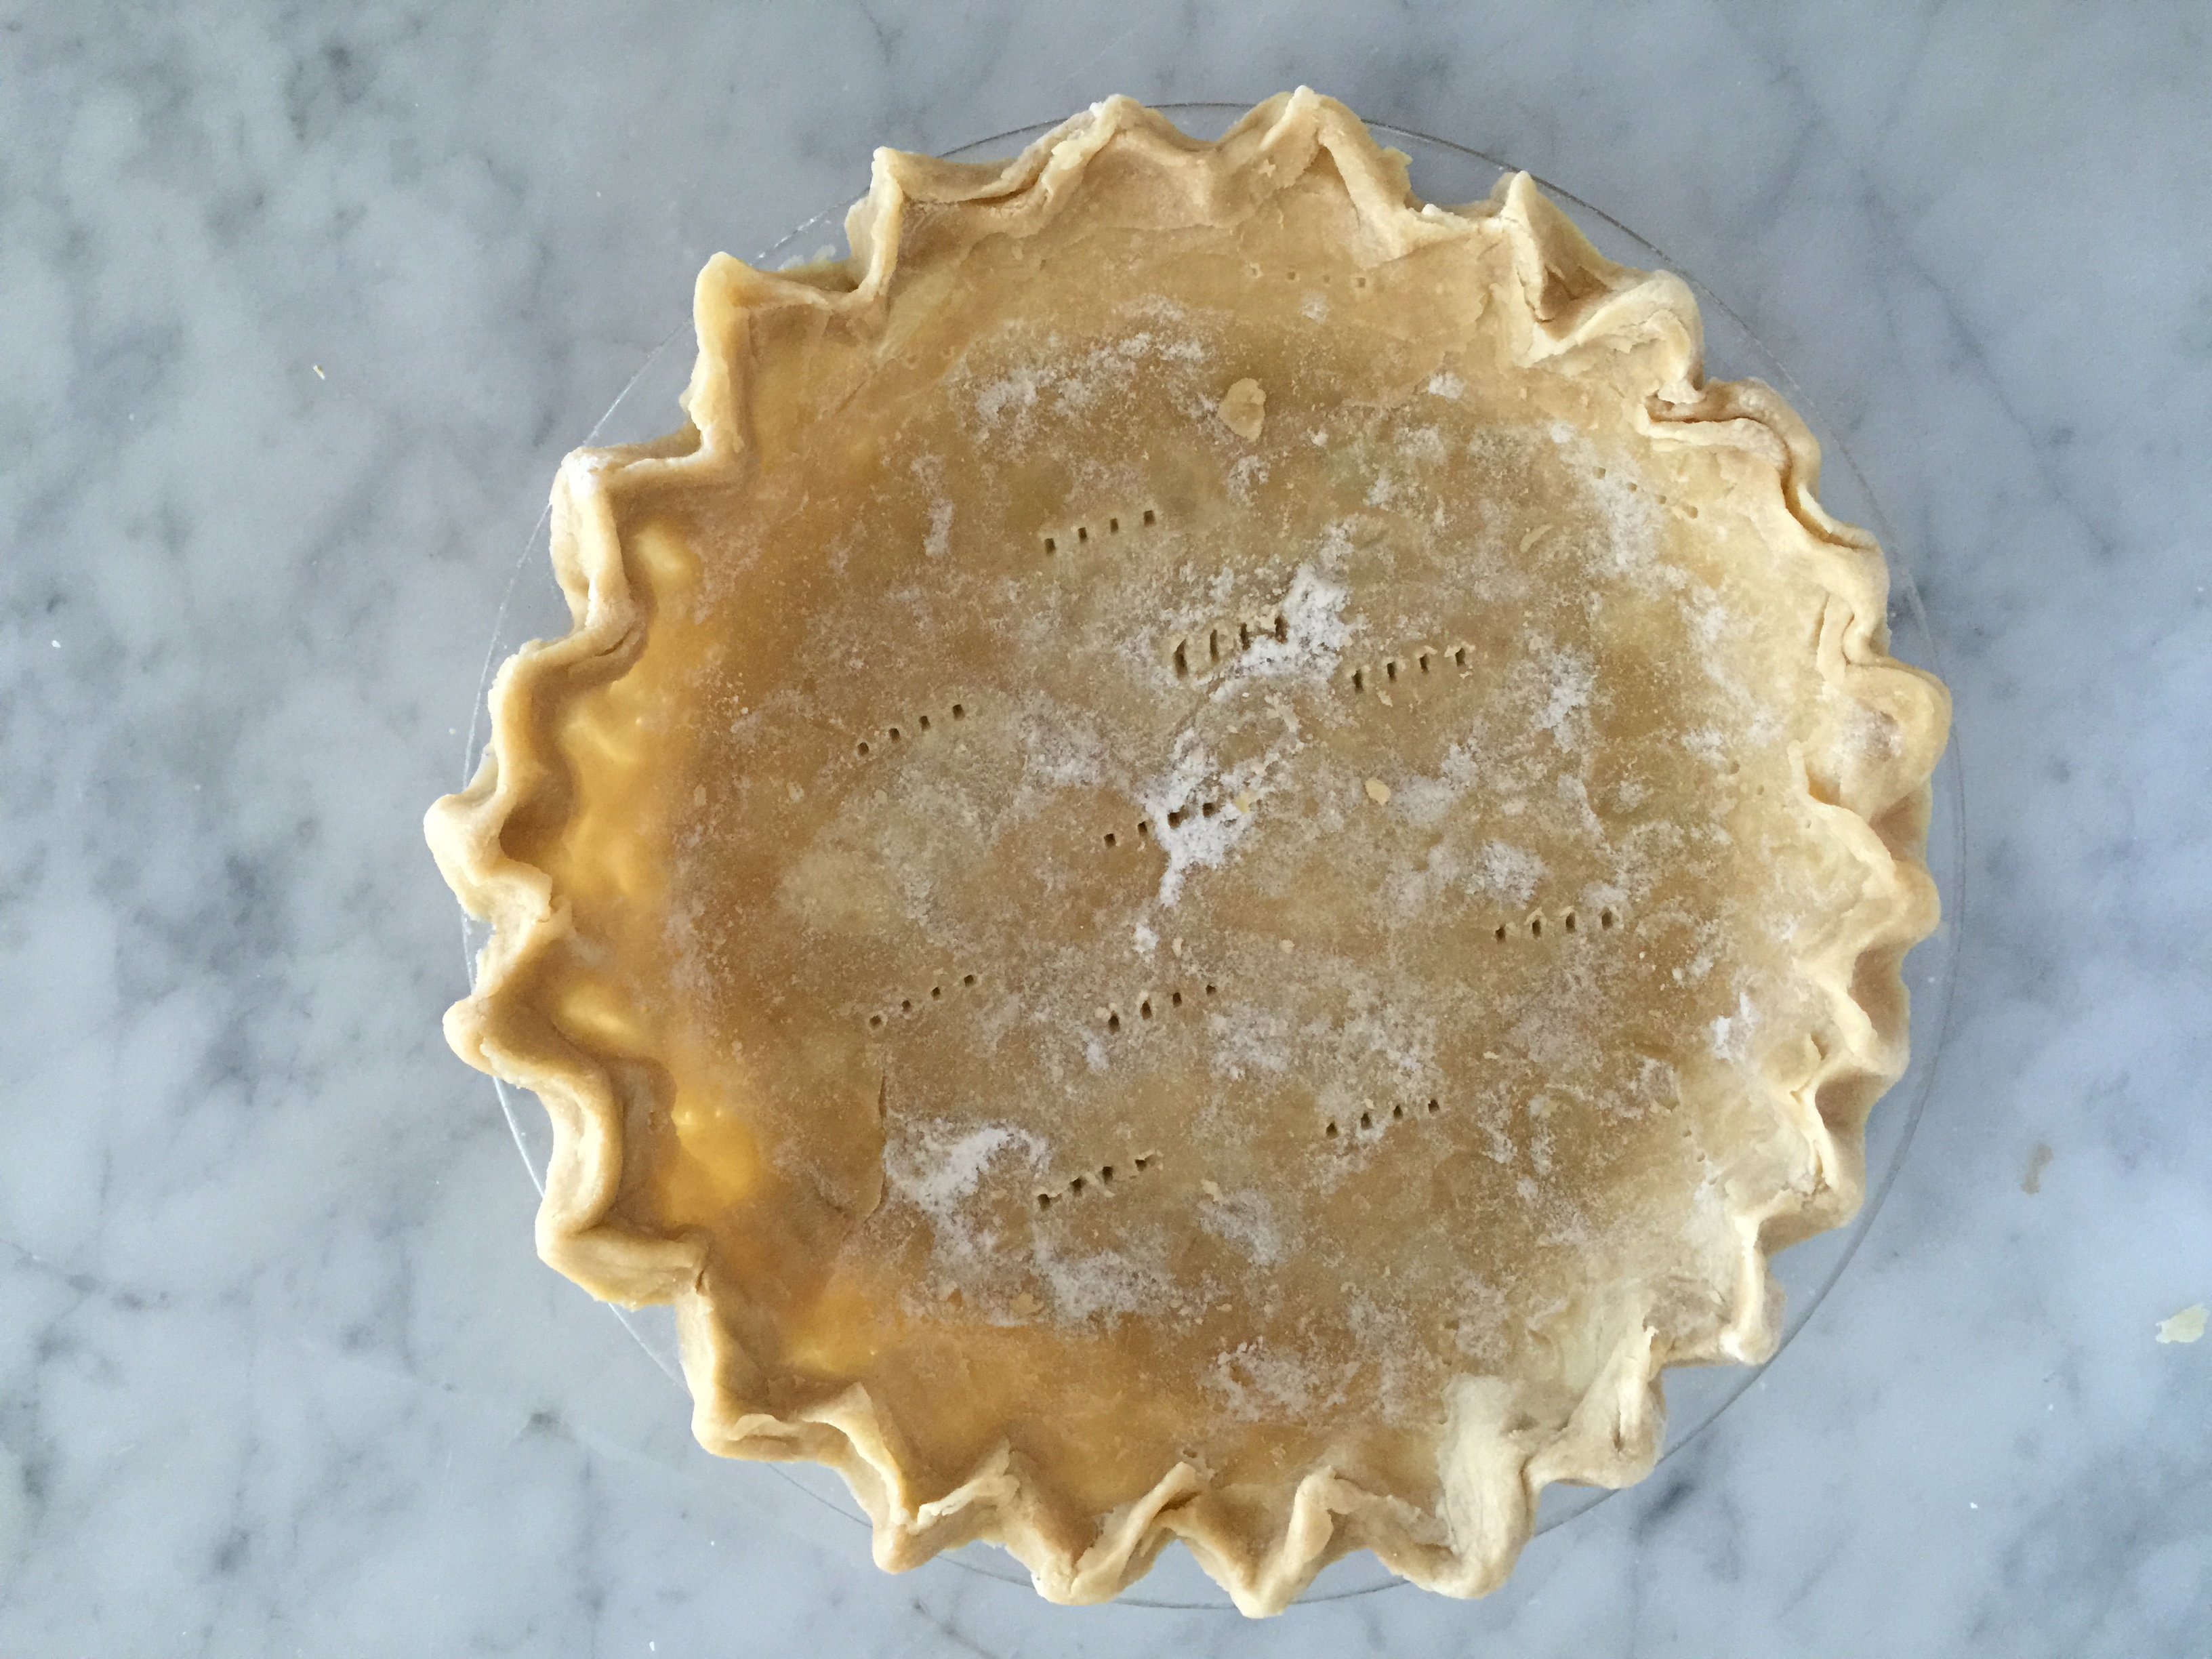 Best Basic Flaky Pie Crust and No-Shrink Blind Bake Pie Crust